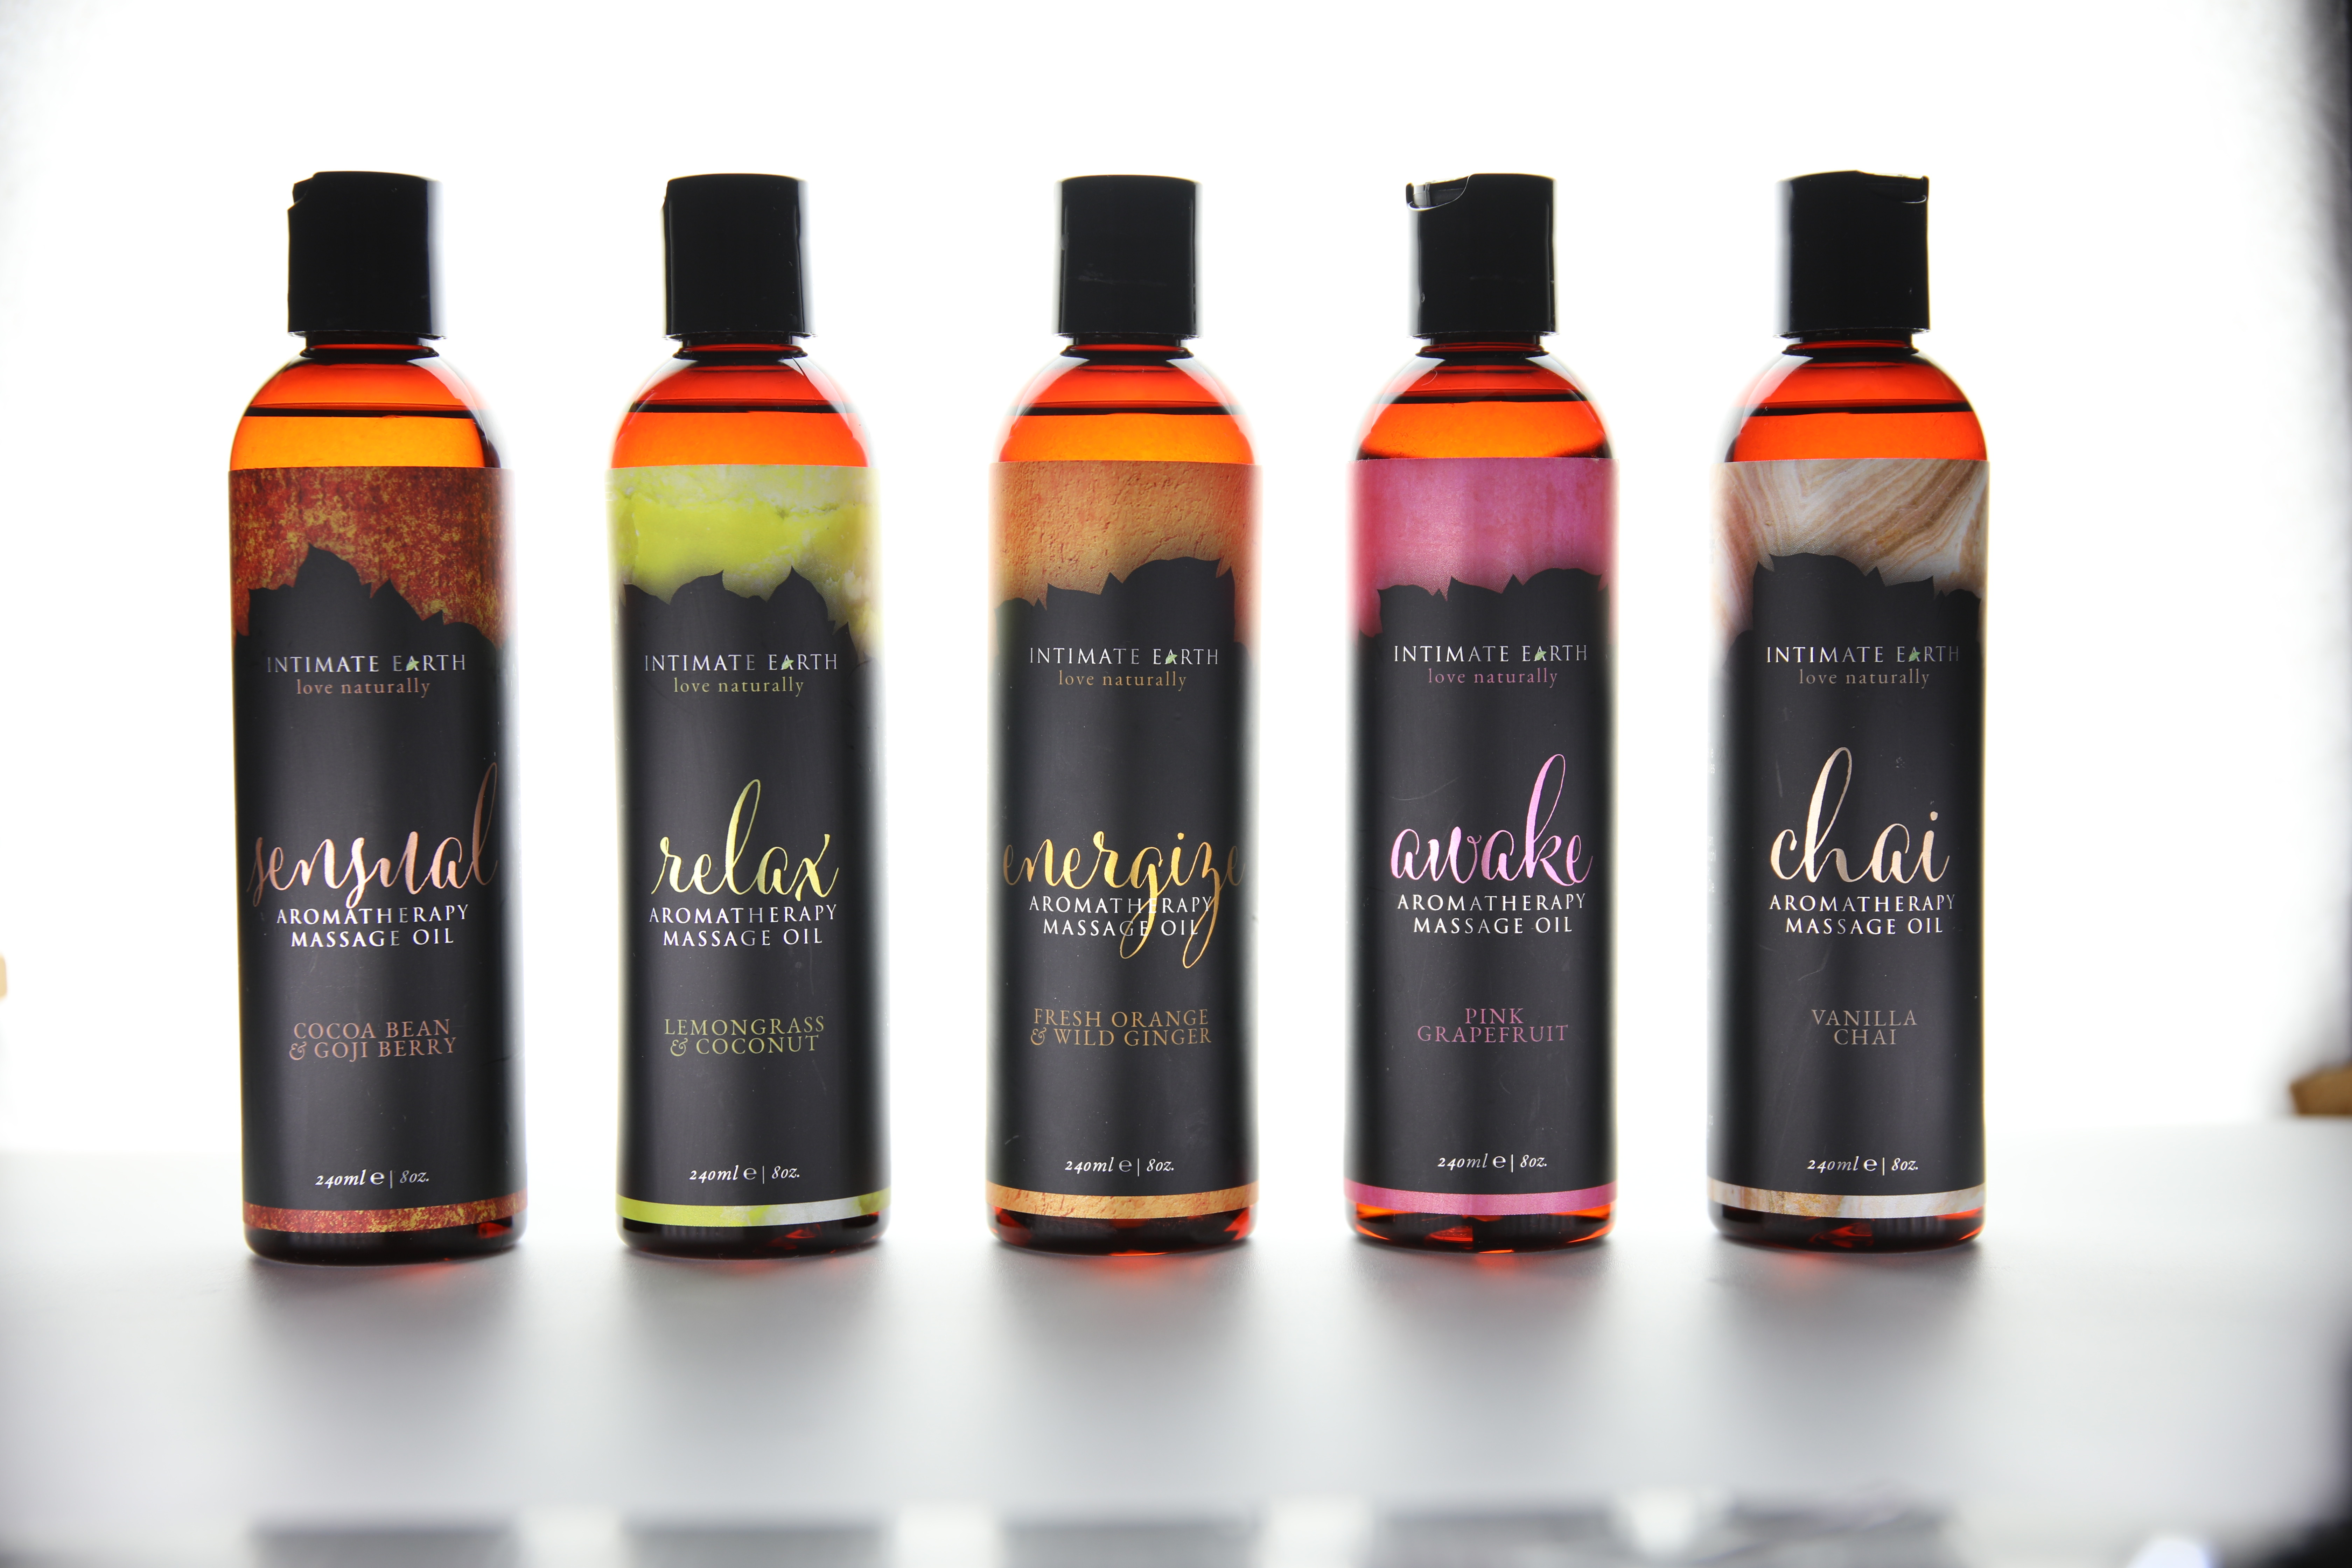 Intimate Earth Aromatherapy Massage Oils